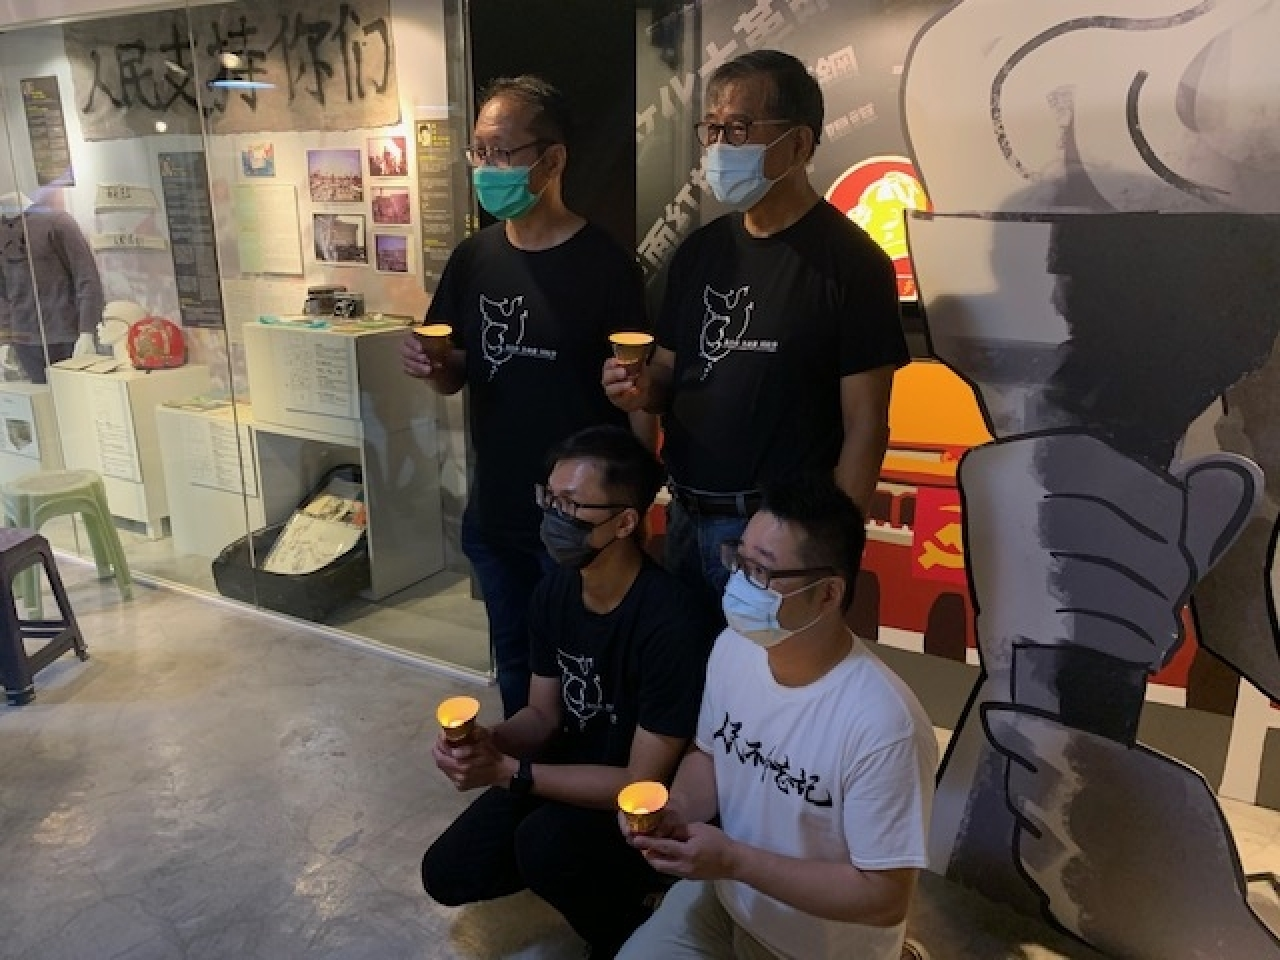 Organisers say they see nothing wrong with the museum and have pandemic measures in place. Photo: RTHK